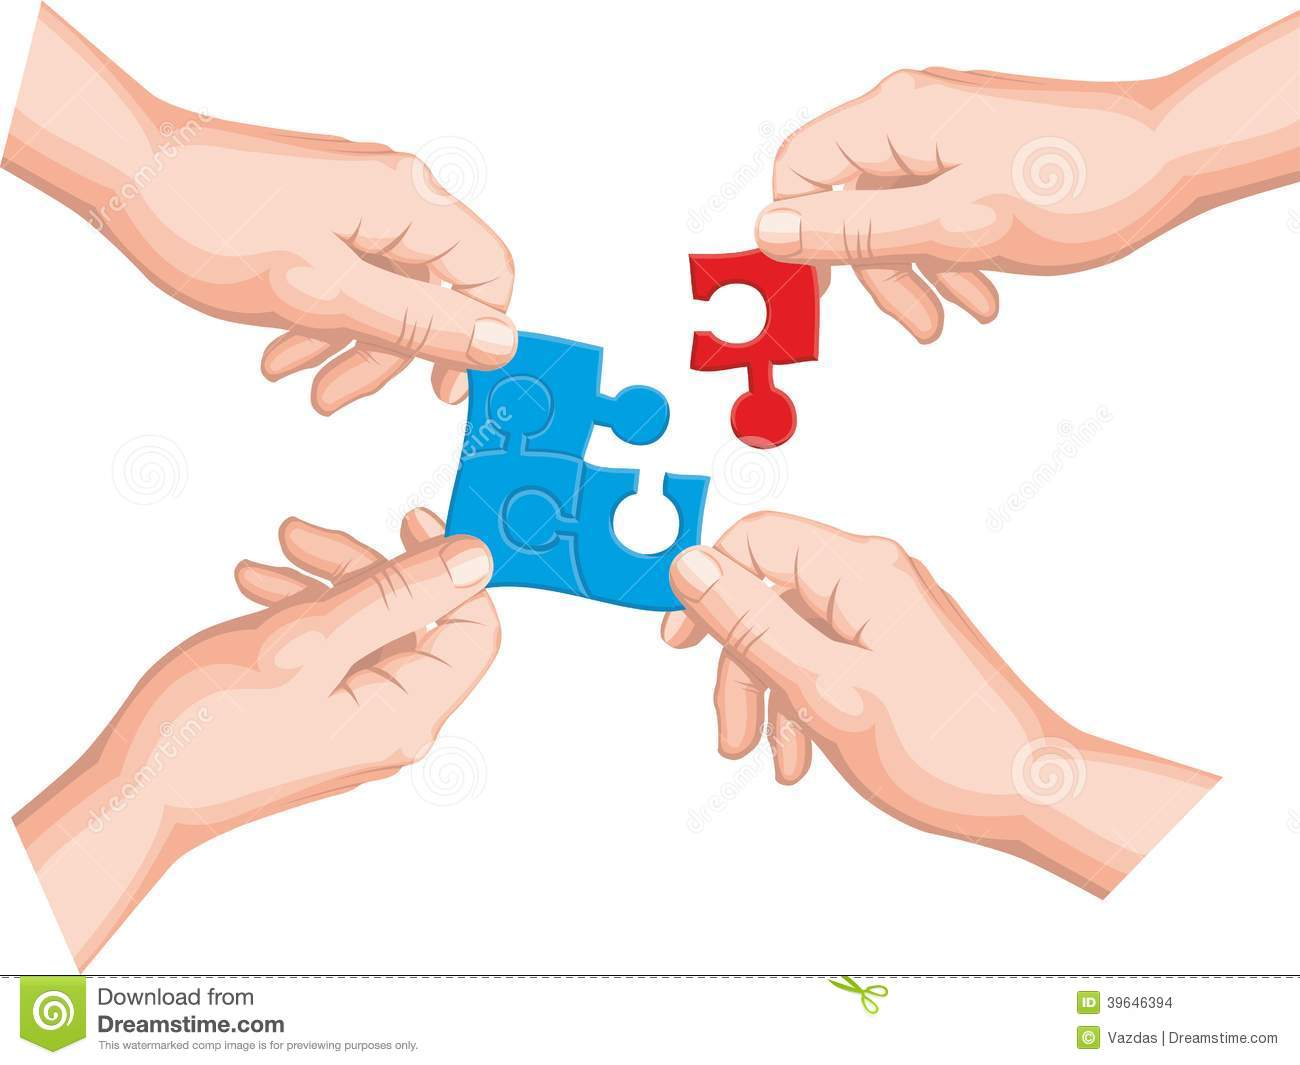 Hands Holding A Puzzle Piece Stock Vector - Image: 39646394